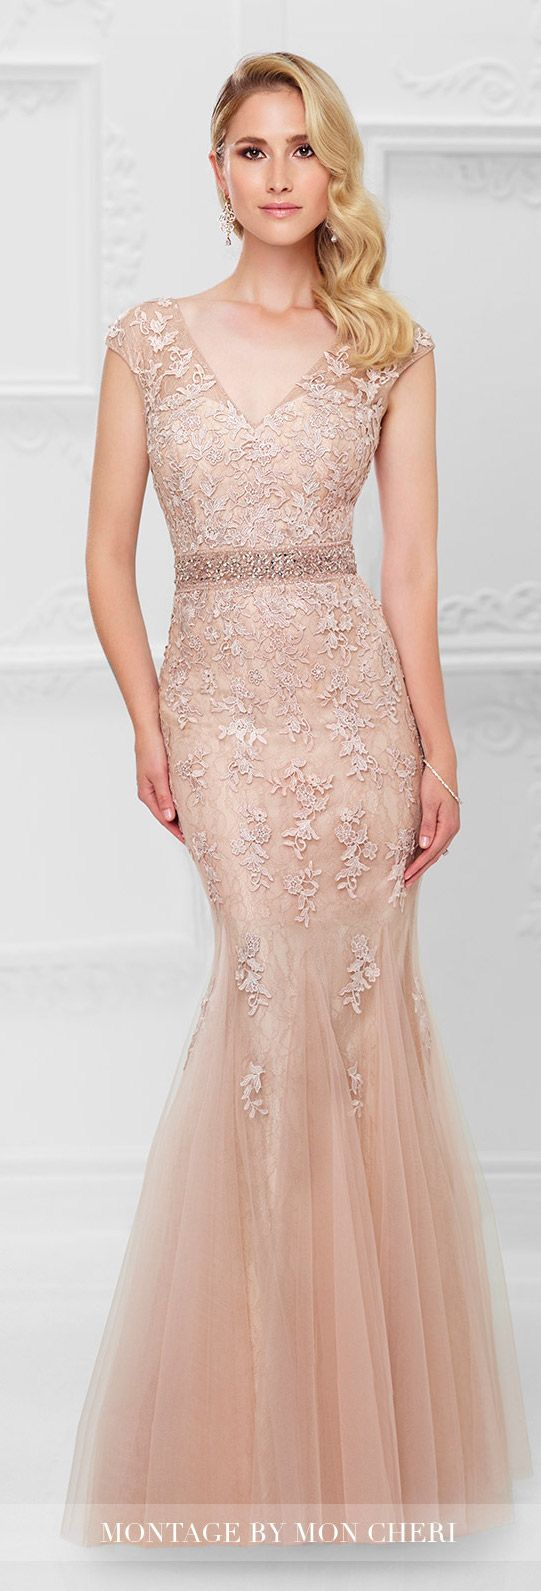 Formal Evening Dress by Mon Cheri Bridals Spring 2017 | Wedding Guest Gown